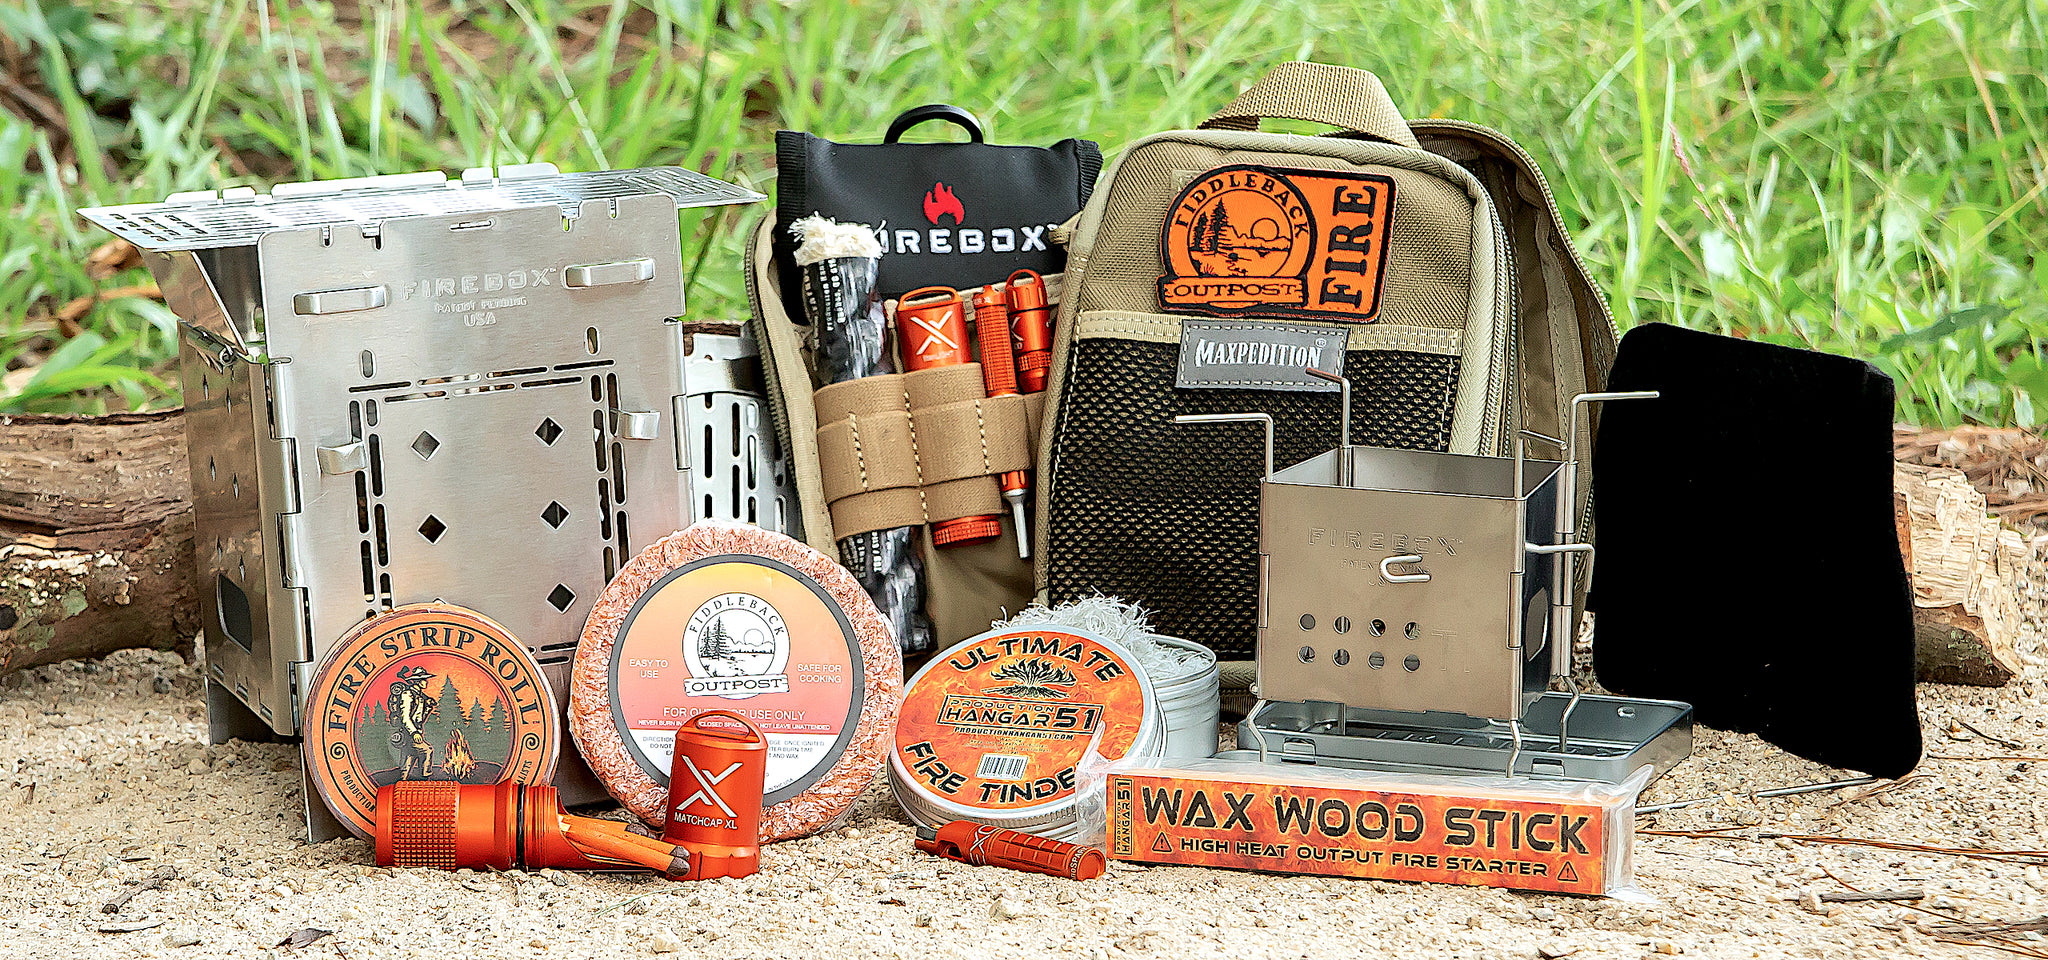 Fire Collection from Fiddleback Outpost